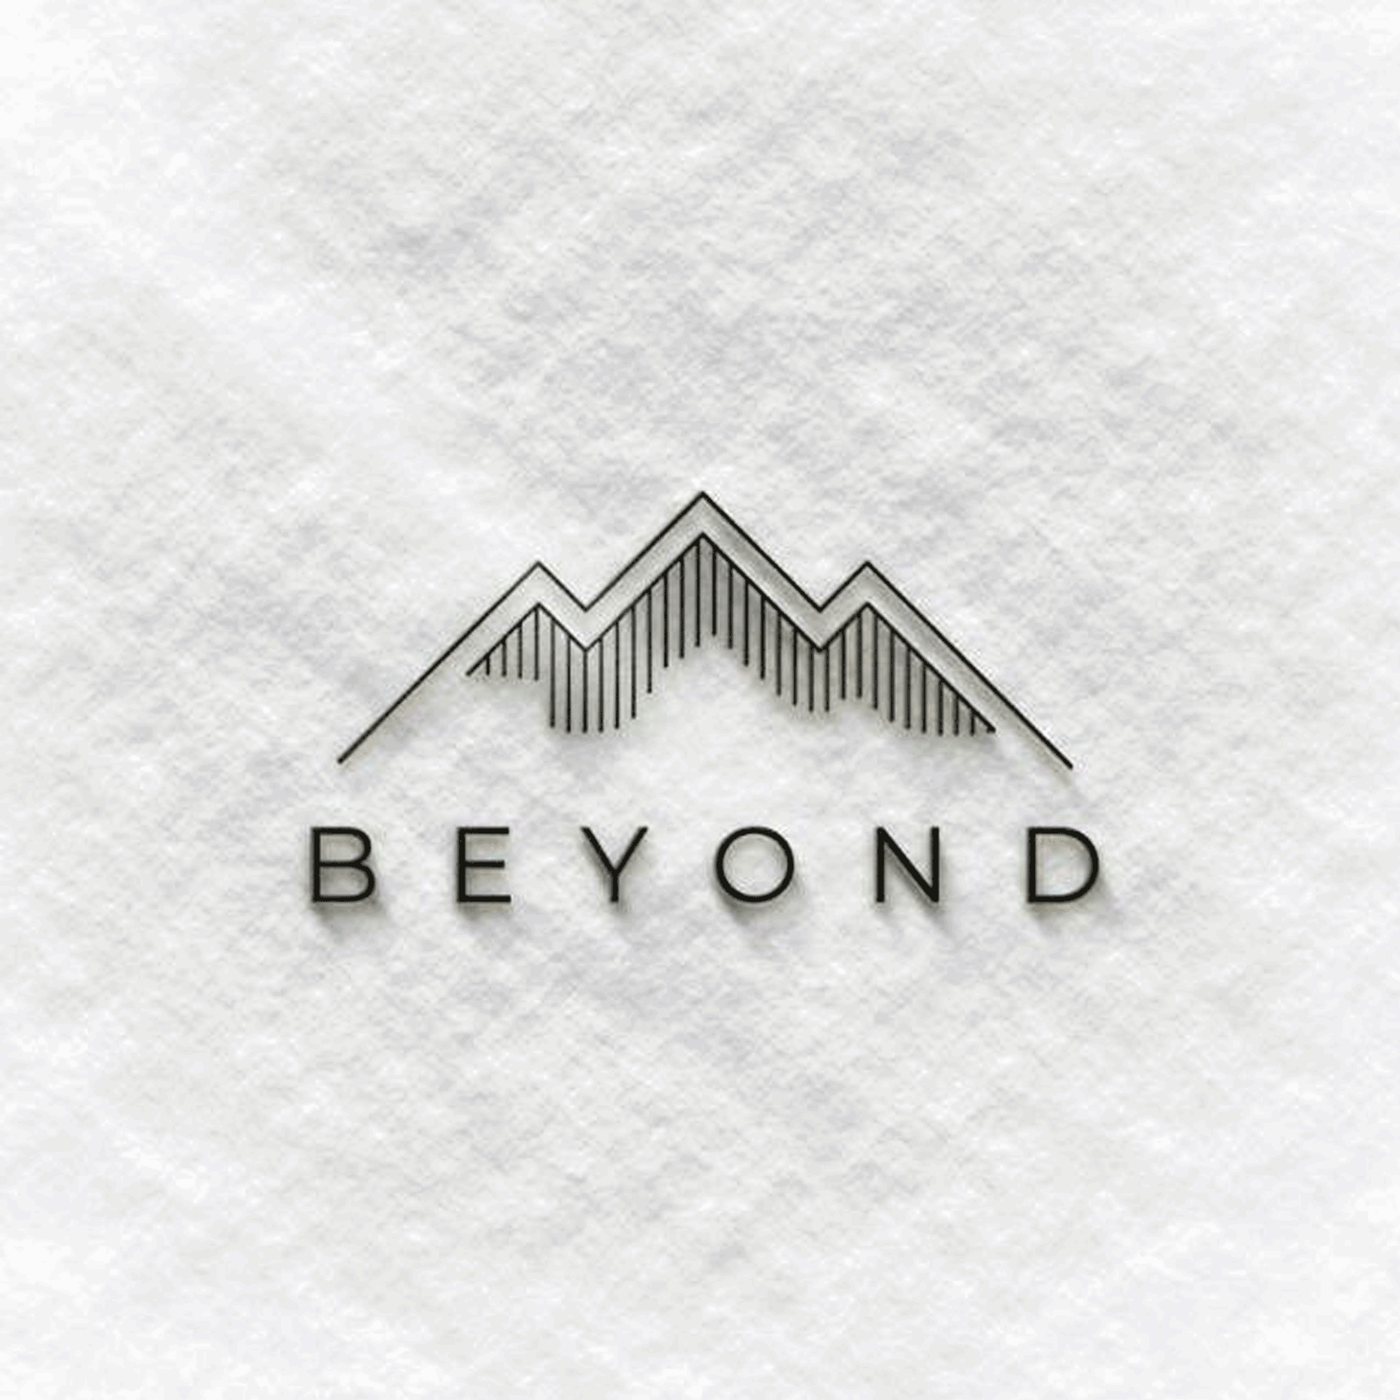 Beyond Church - 21-07-2019